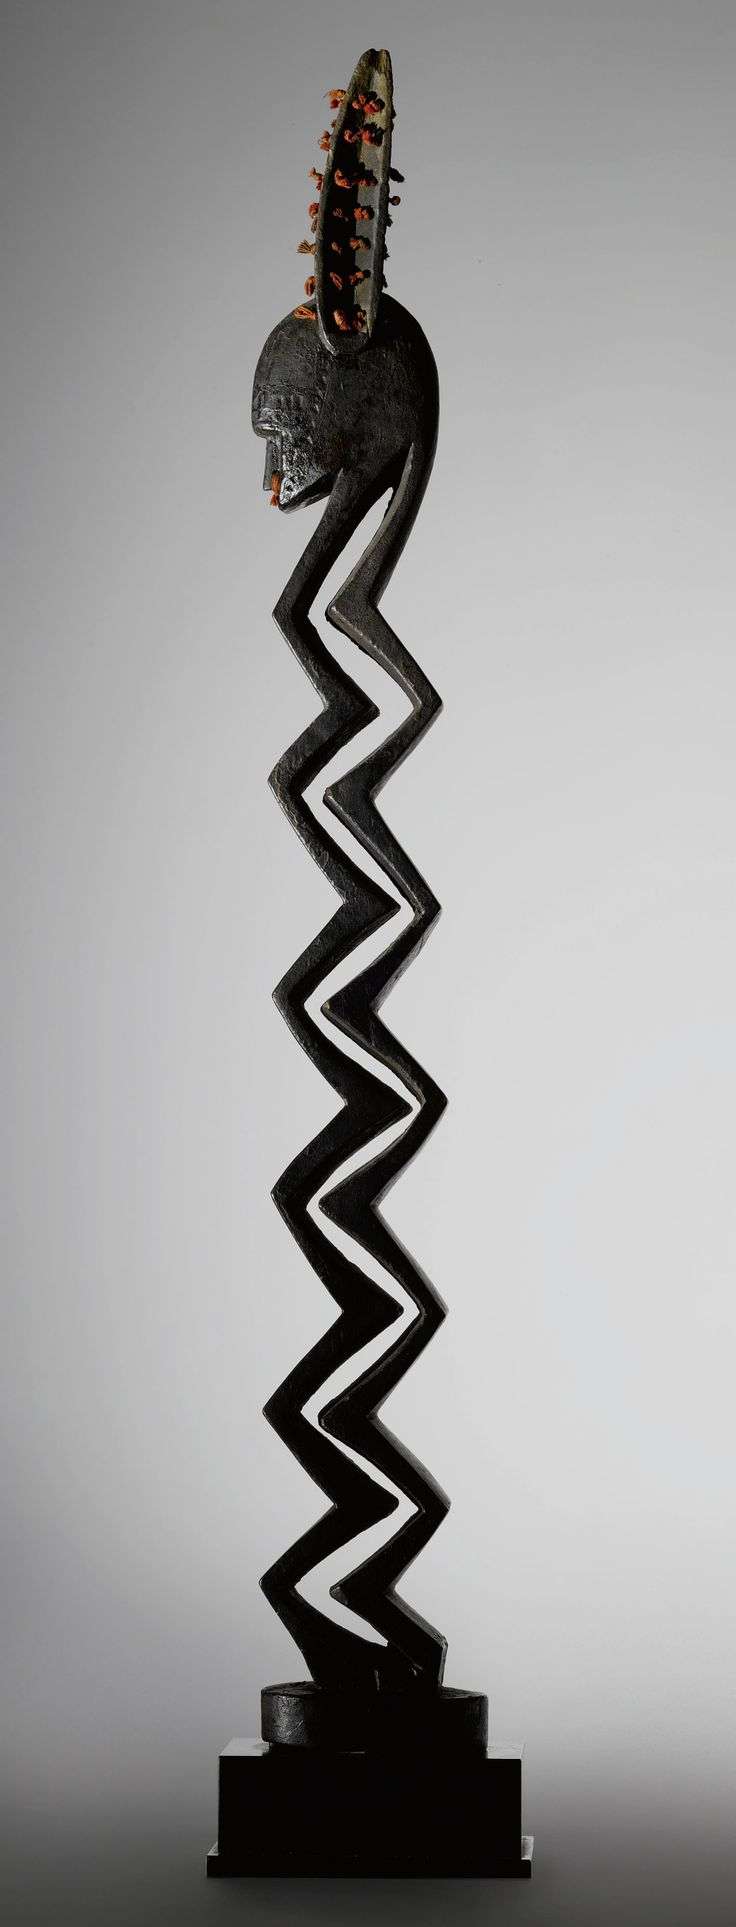 Africa | Zigzag figure from the Bamana people of Mali | Wood and red cord | Sold by Sotheby's on the 11th of May 2012 for 2,658,500$